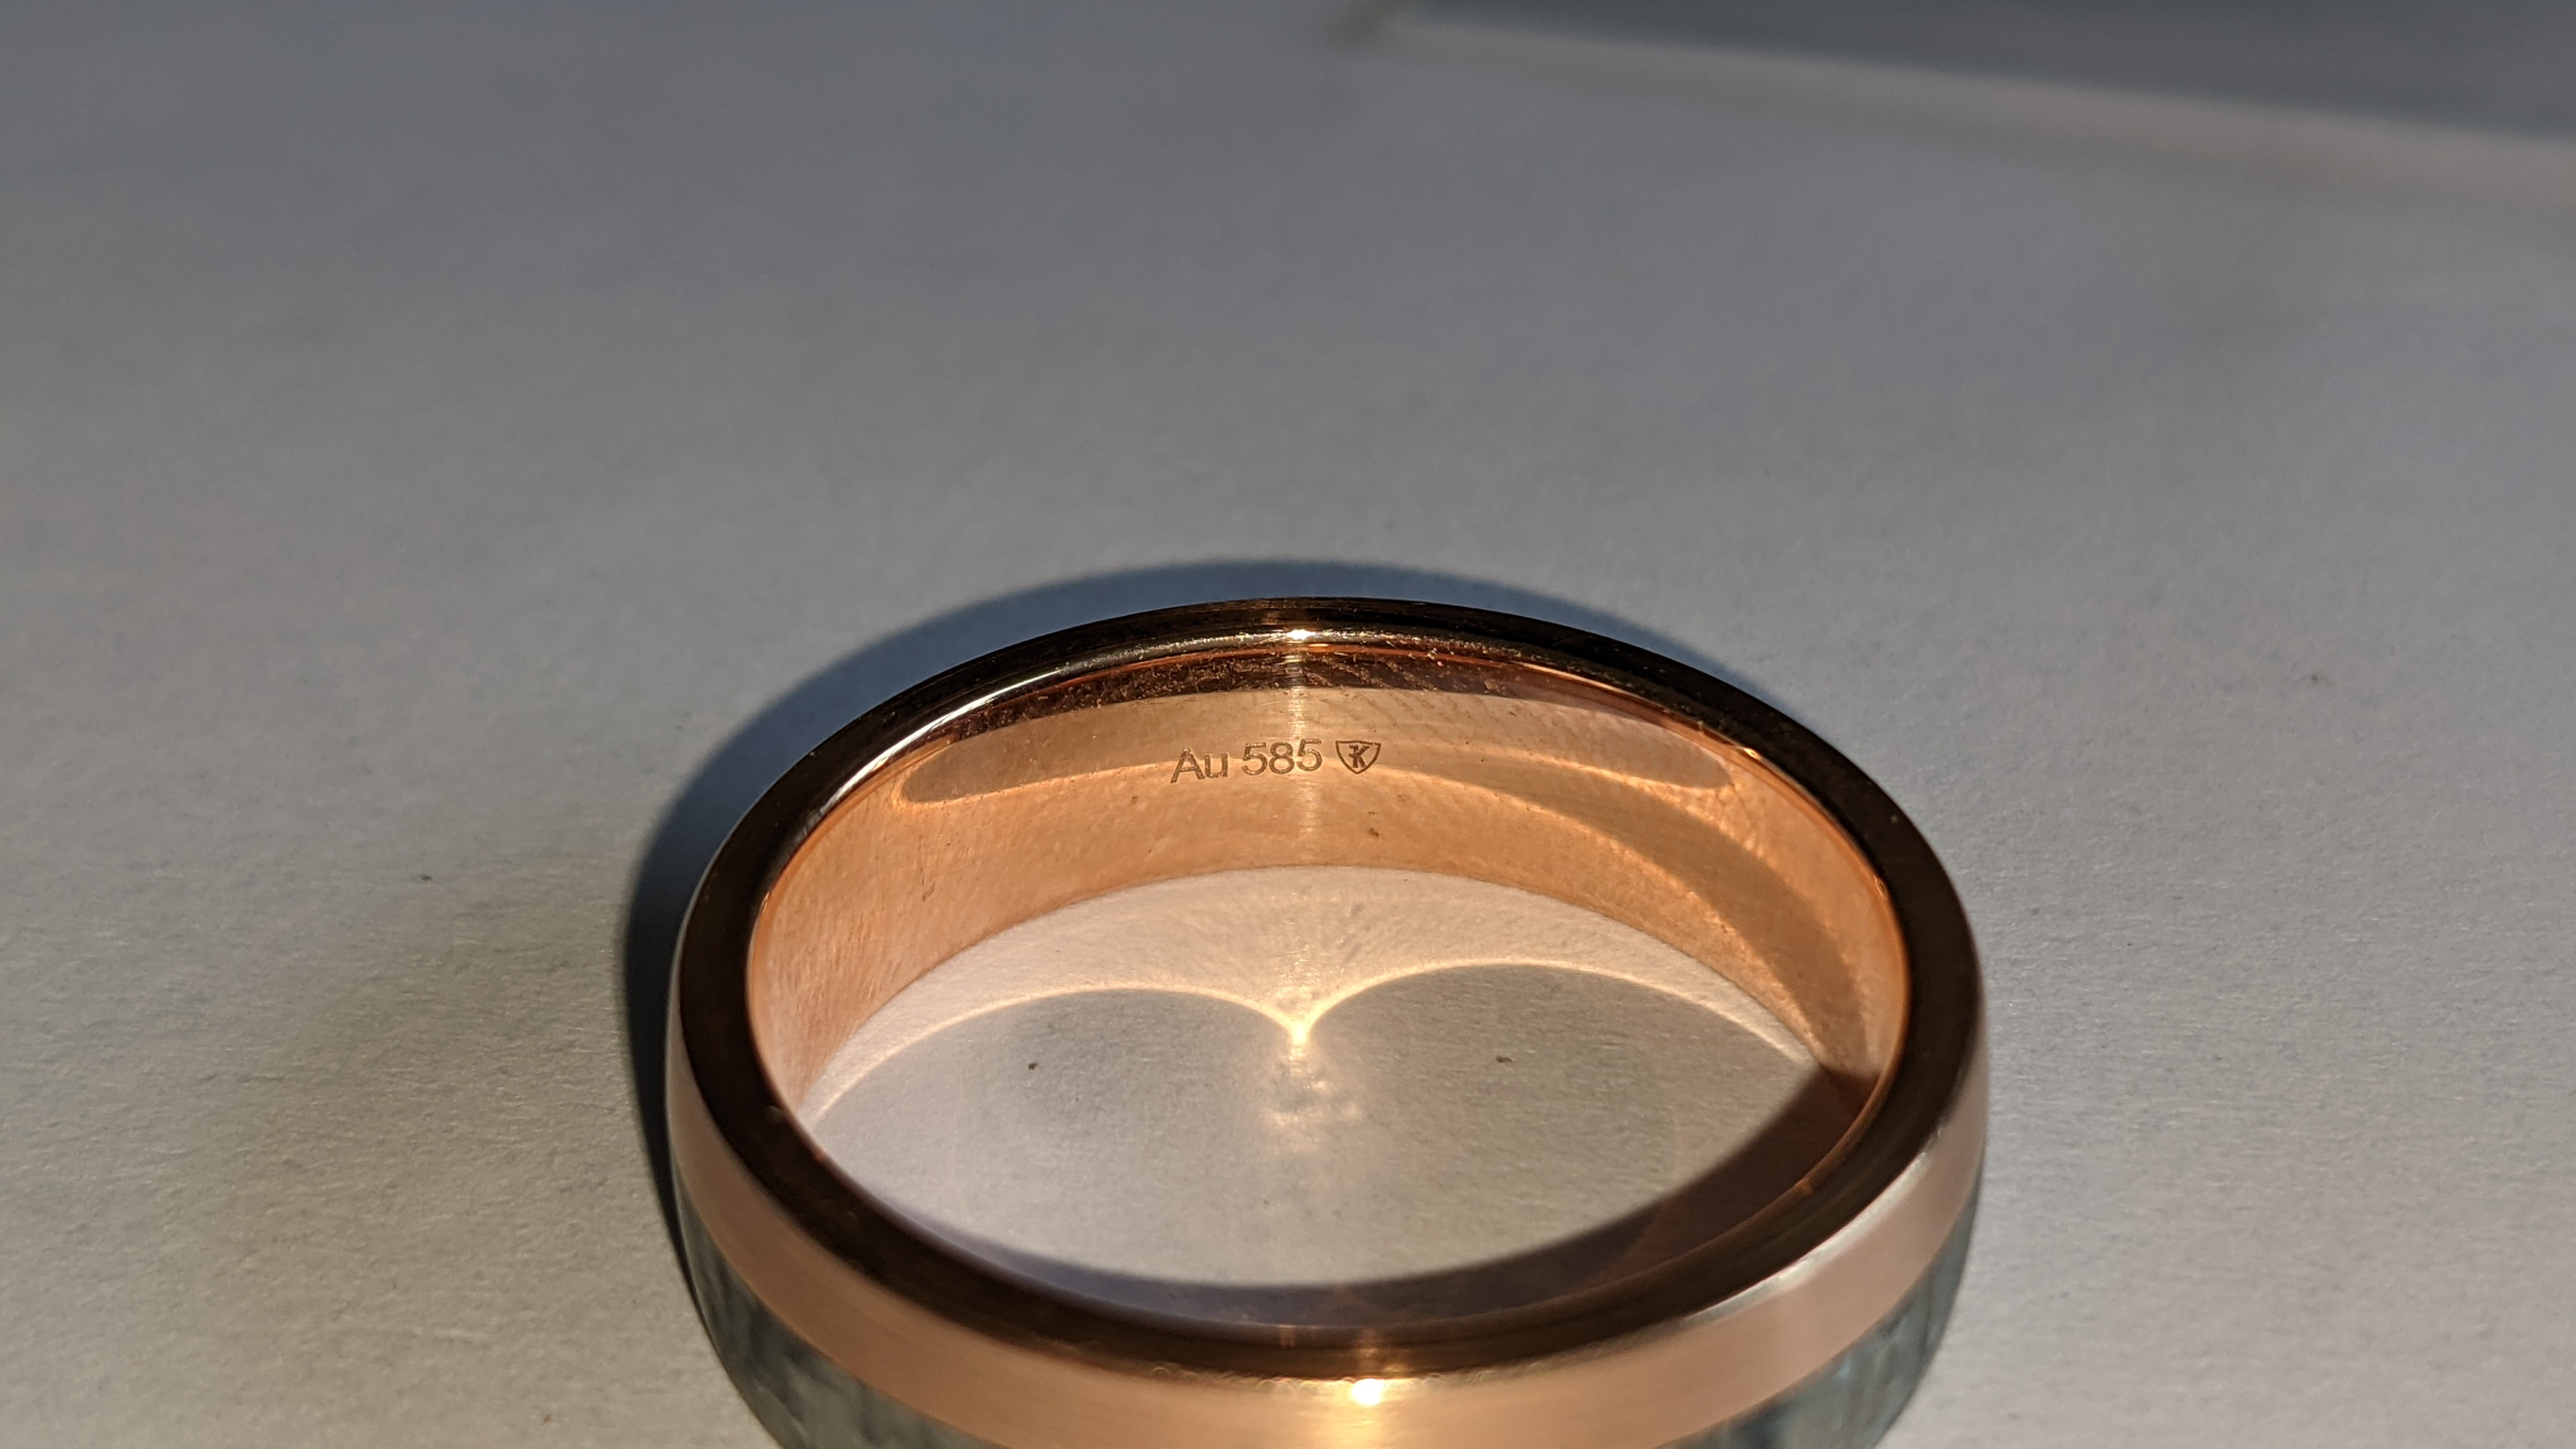 Carbon & 14ct rose gold ring RRP £705 - Image 8 of 13